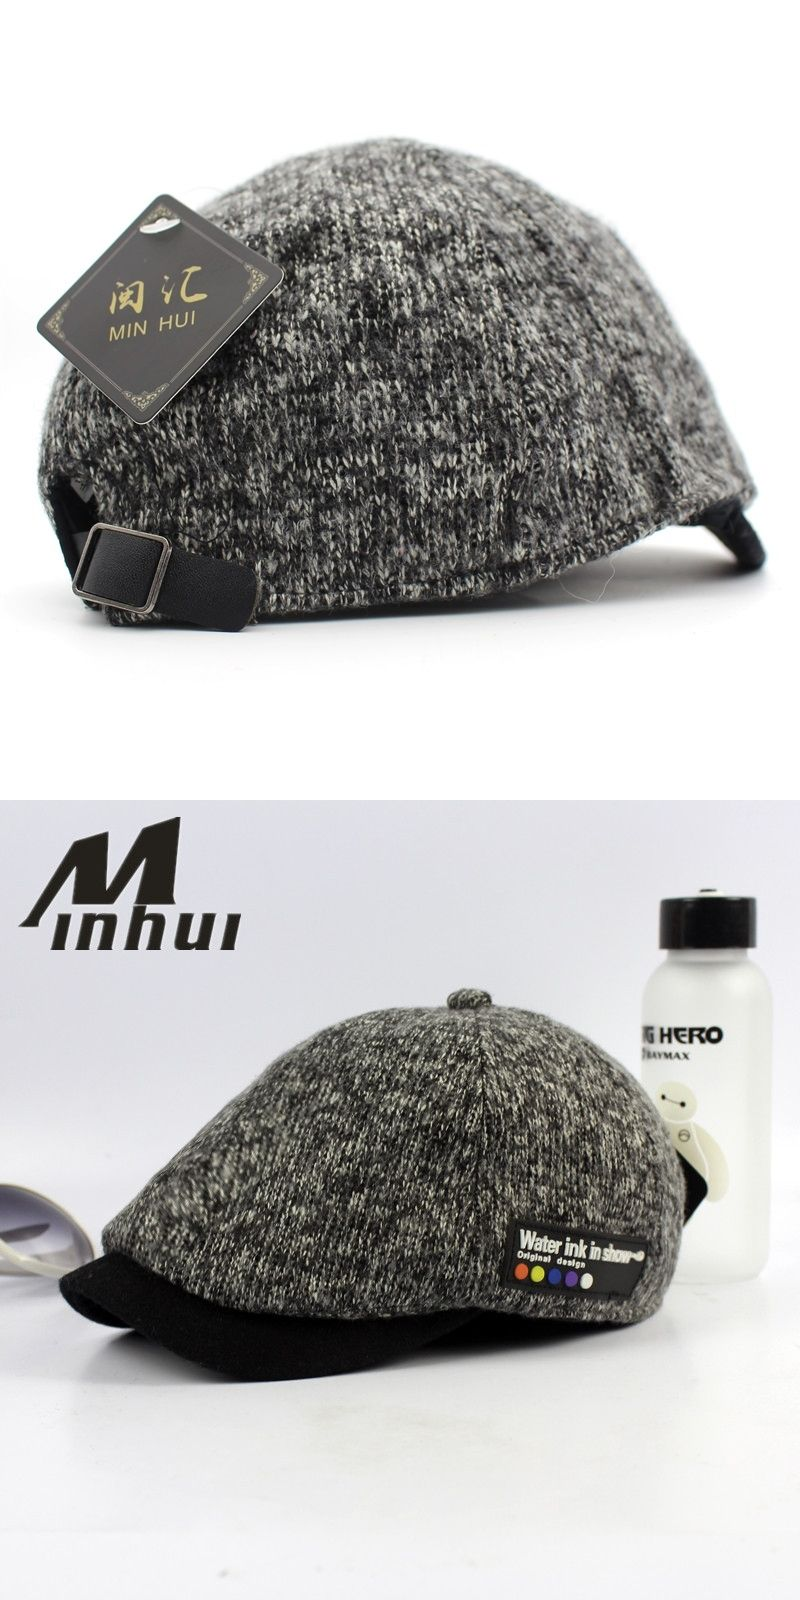 77b64aa1c90c4 Minhui 2016 New Vintage Beret Hats for Men Winter Cap Casquette Visor Knit  Hat Boinas Bere